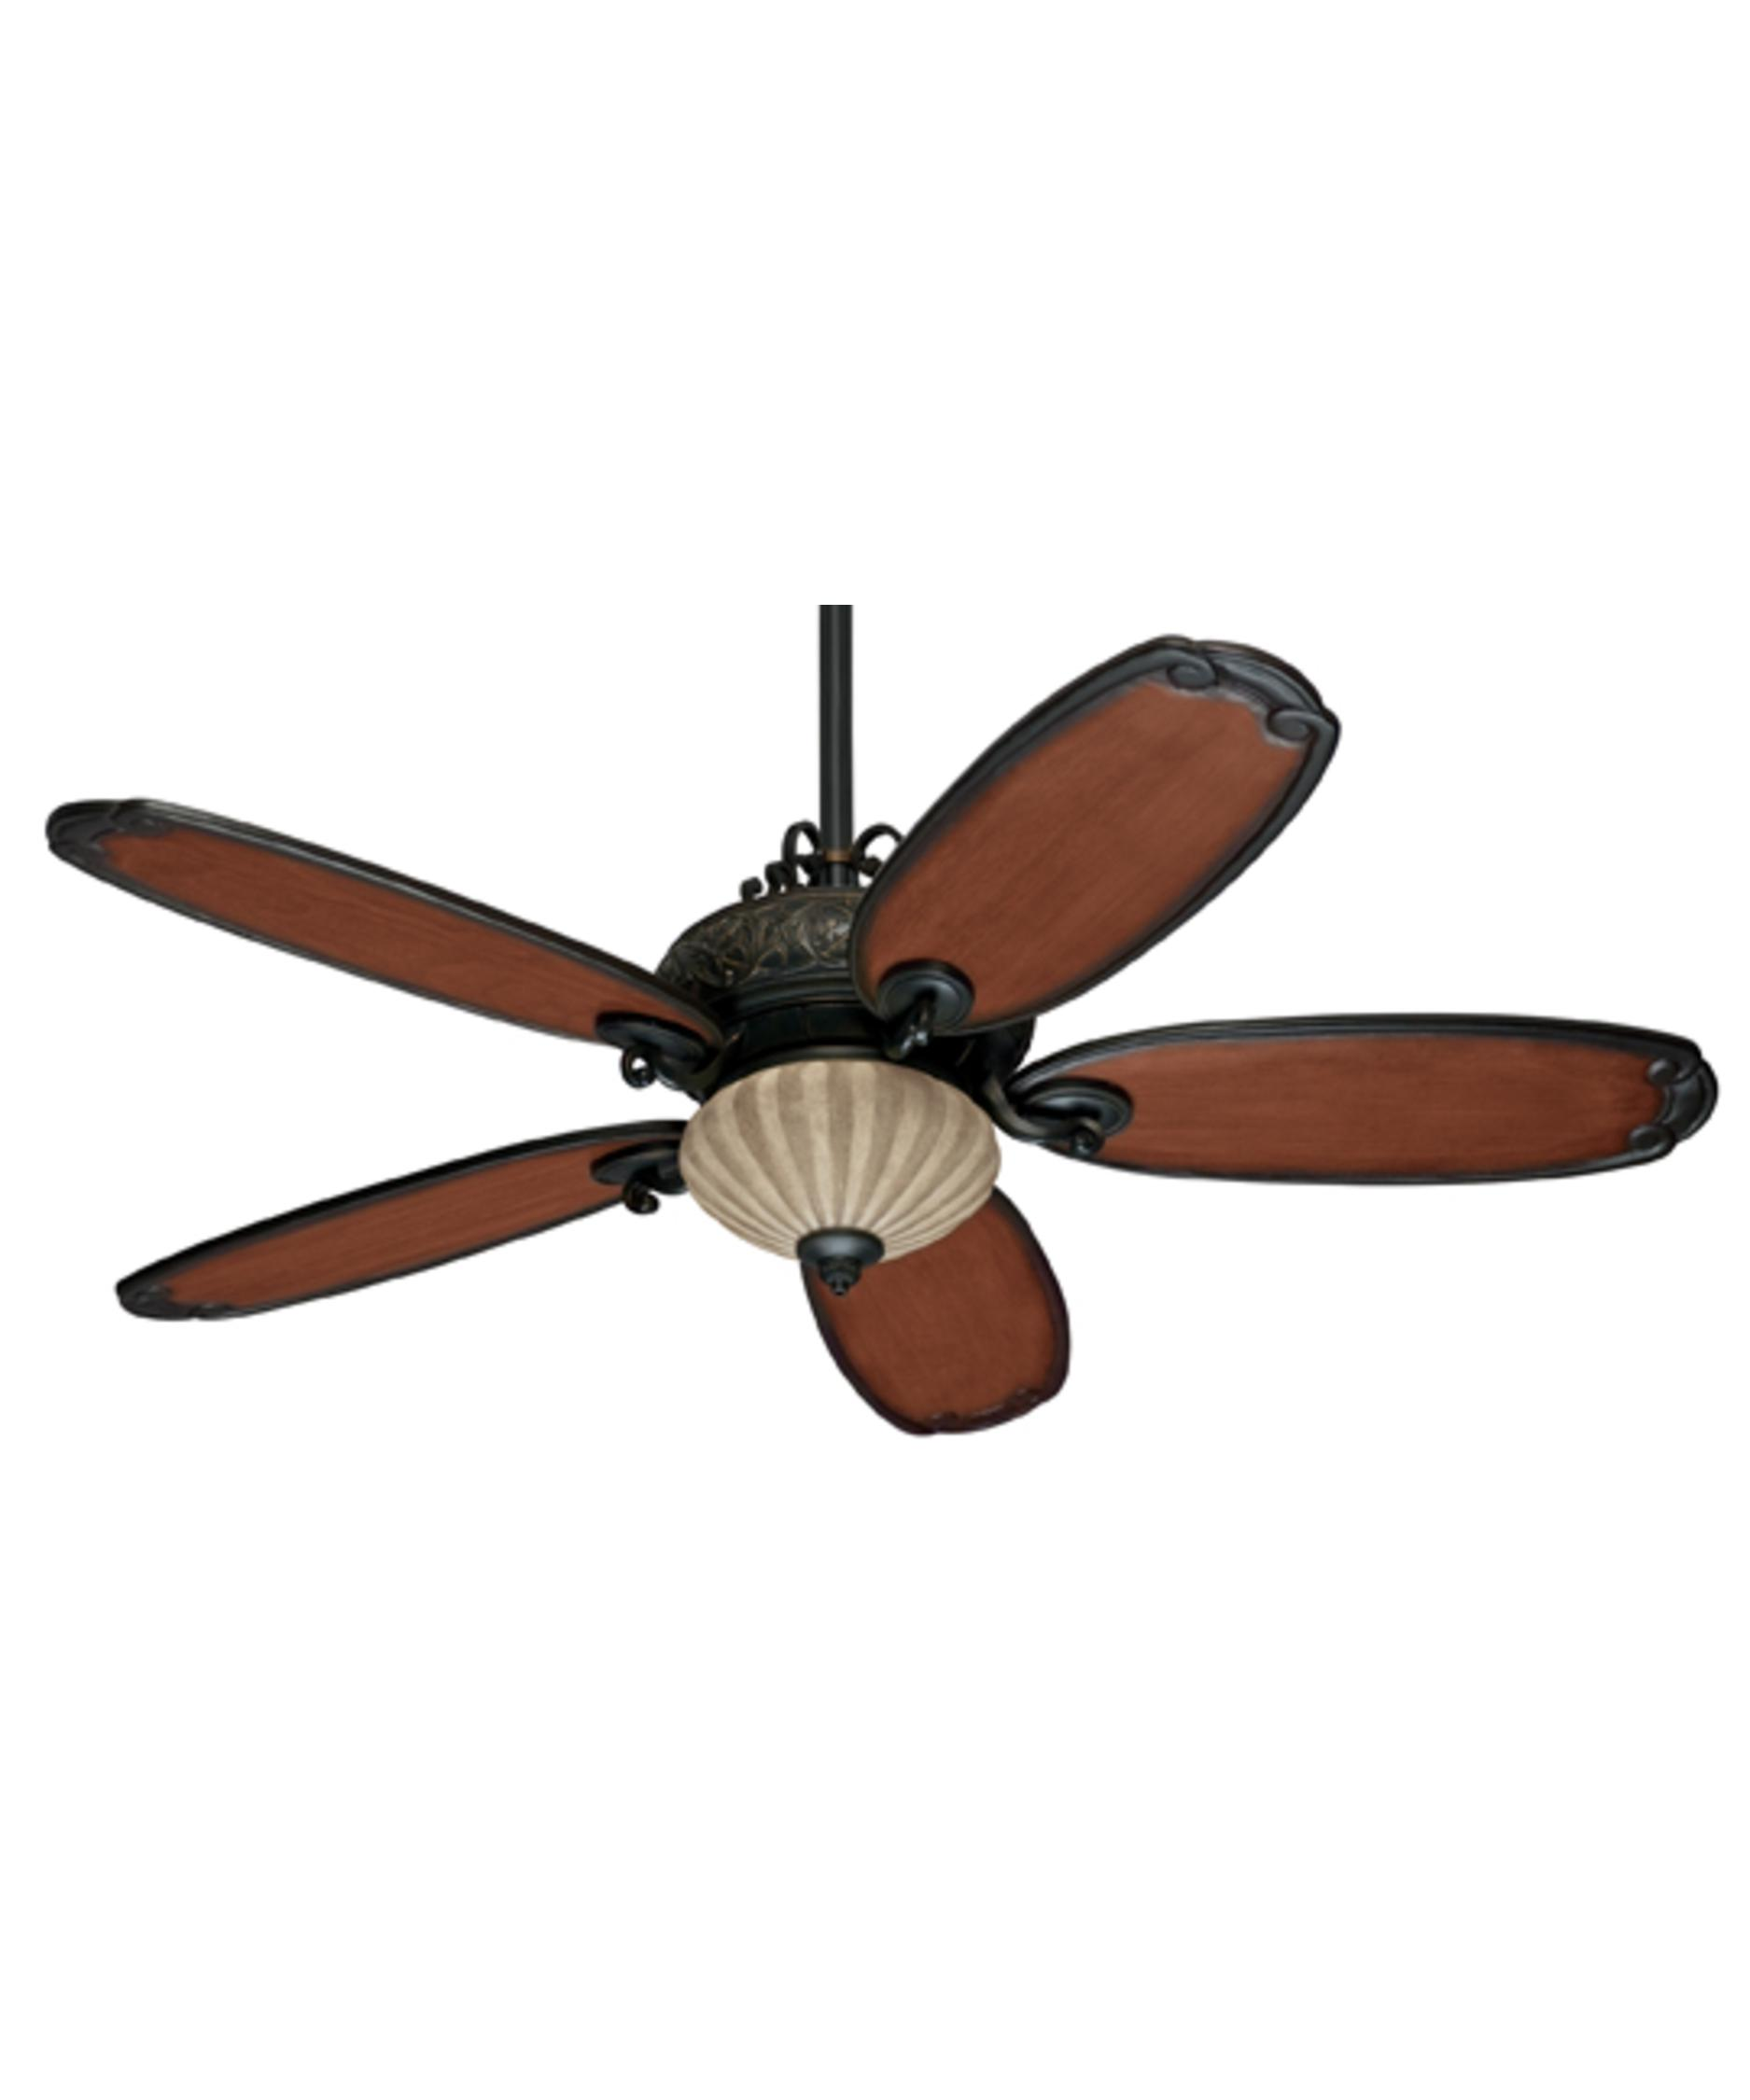 Murray Feiss Ceiling Fan Light Kit: Hunter Fan 20491 Solano 54 Inch Ceiling Fan With Light Kit